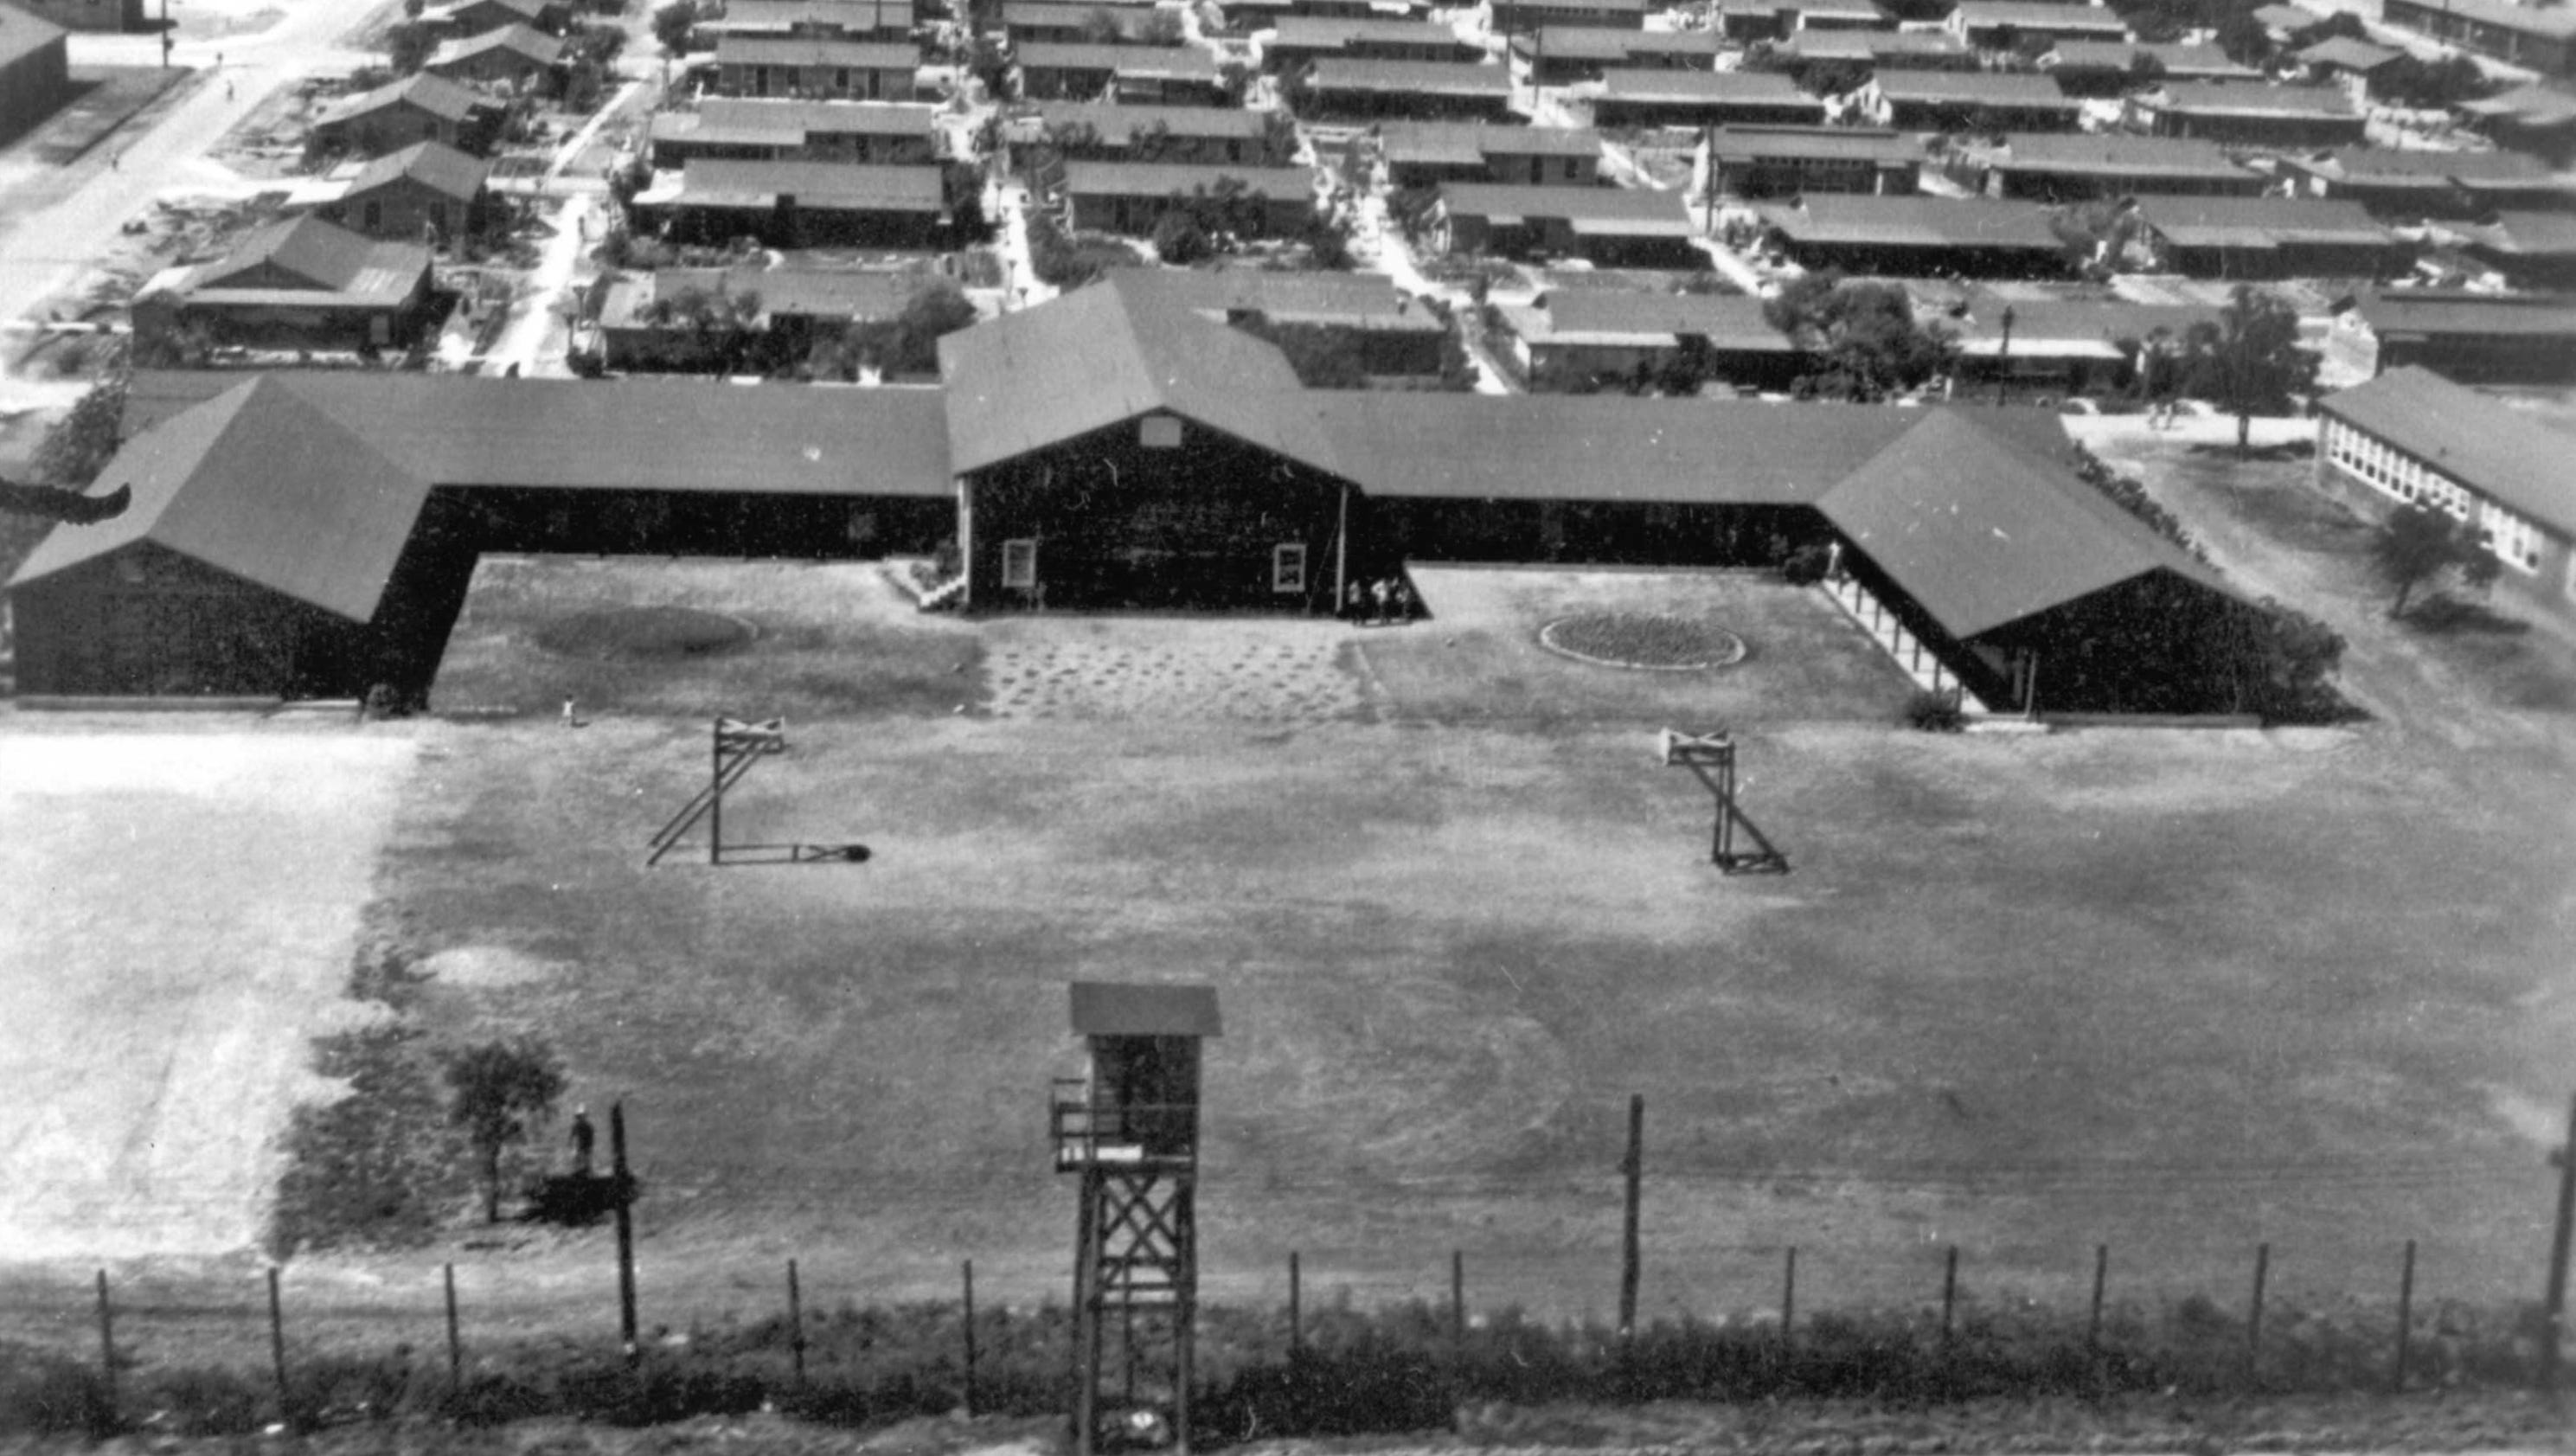 trump ally s talk of world war ii internment camps perpetuates trump ally s talk of world war ii internment camps perpetuates painful memory